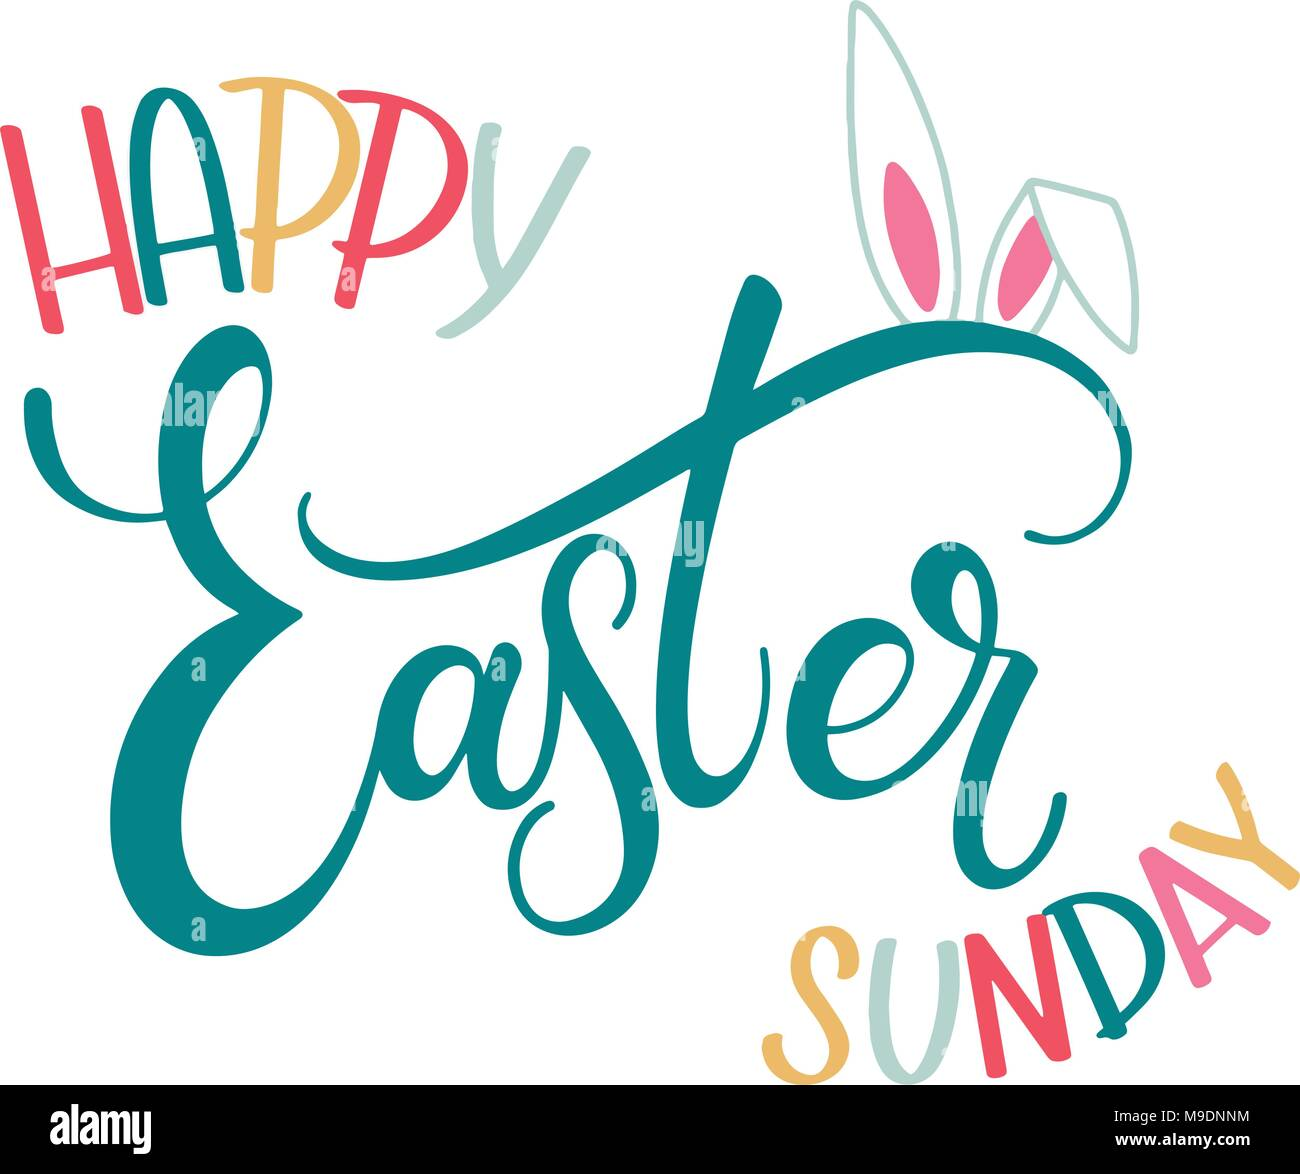 Happy easter sunday colorful lettering hand written easter phrases happy easter sunday colorful lettering hand written easter phrases seasons greetings m4hsunfo